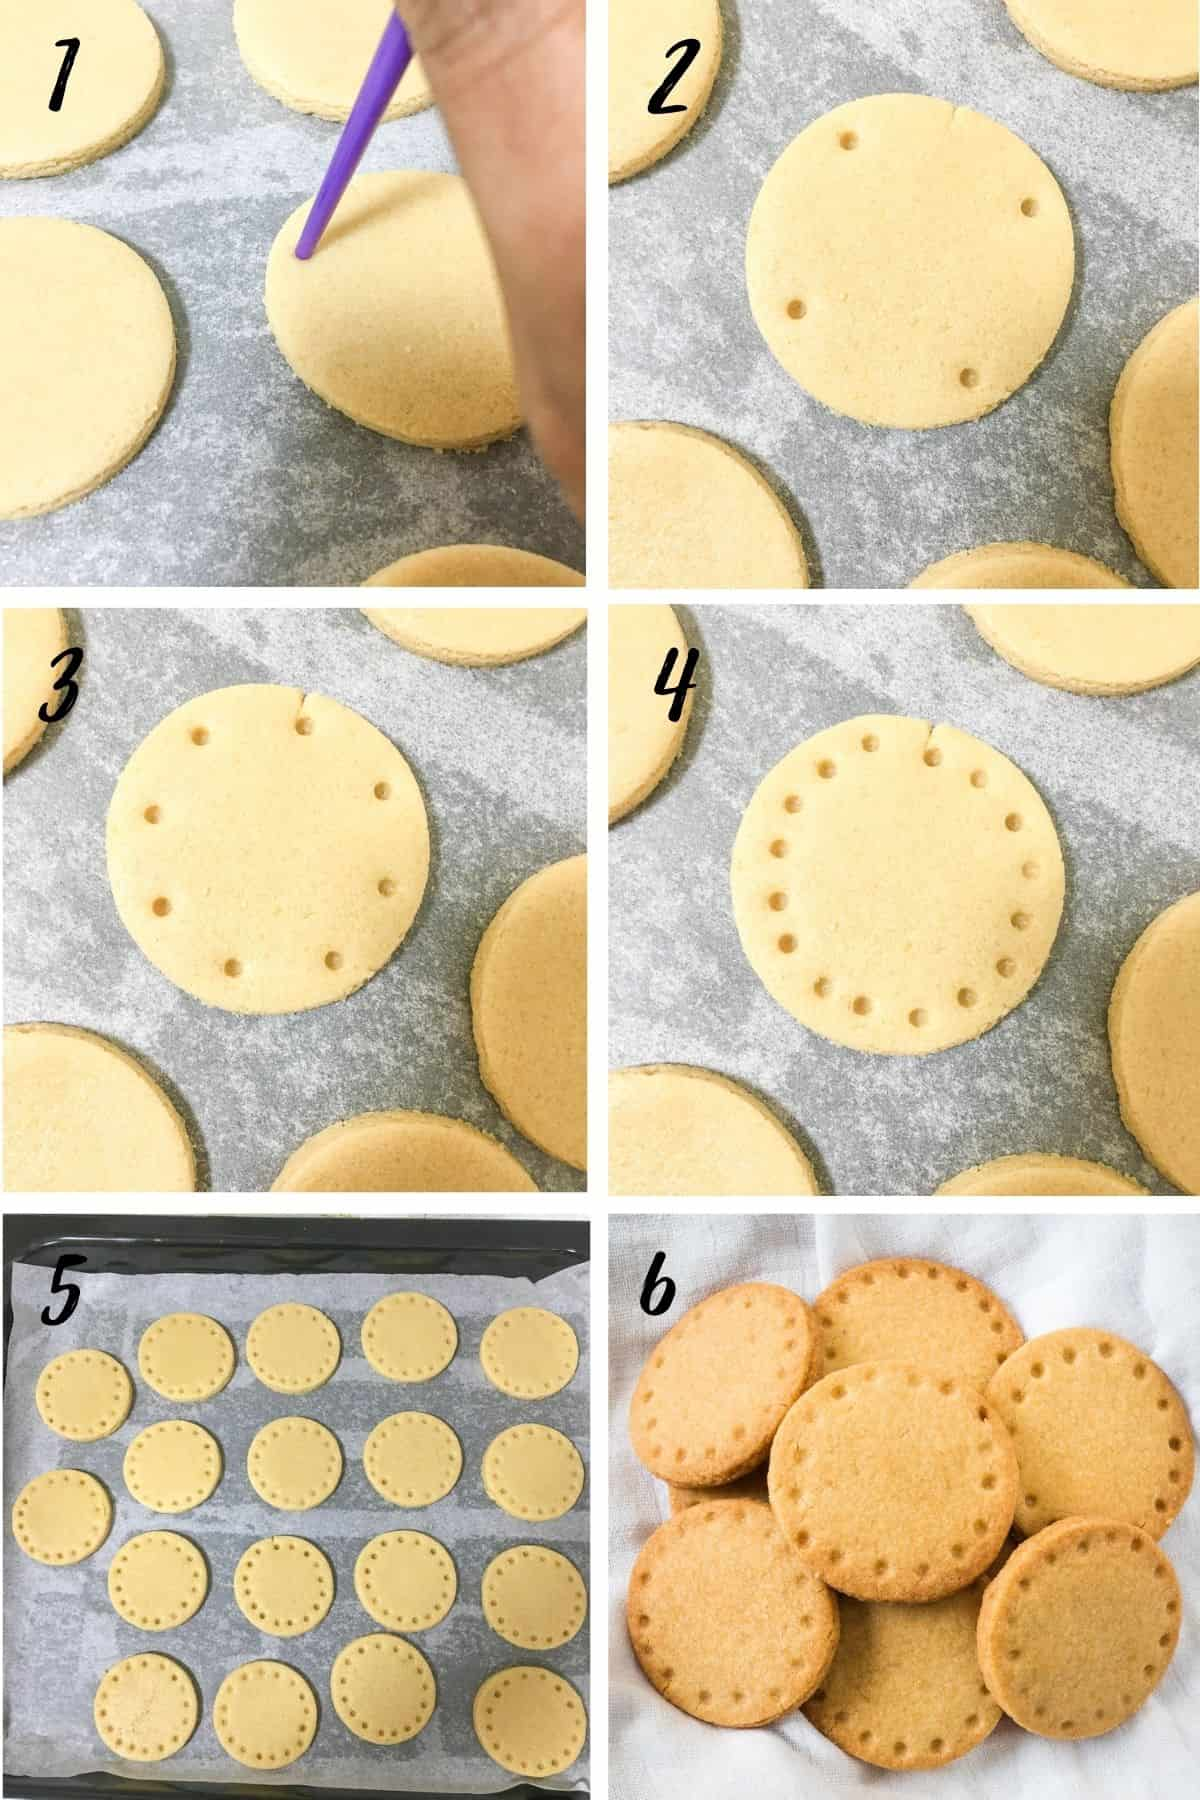 A poster of 6 images showing how to make hole pattern on a round cookie